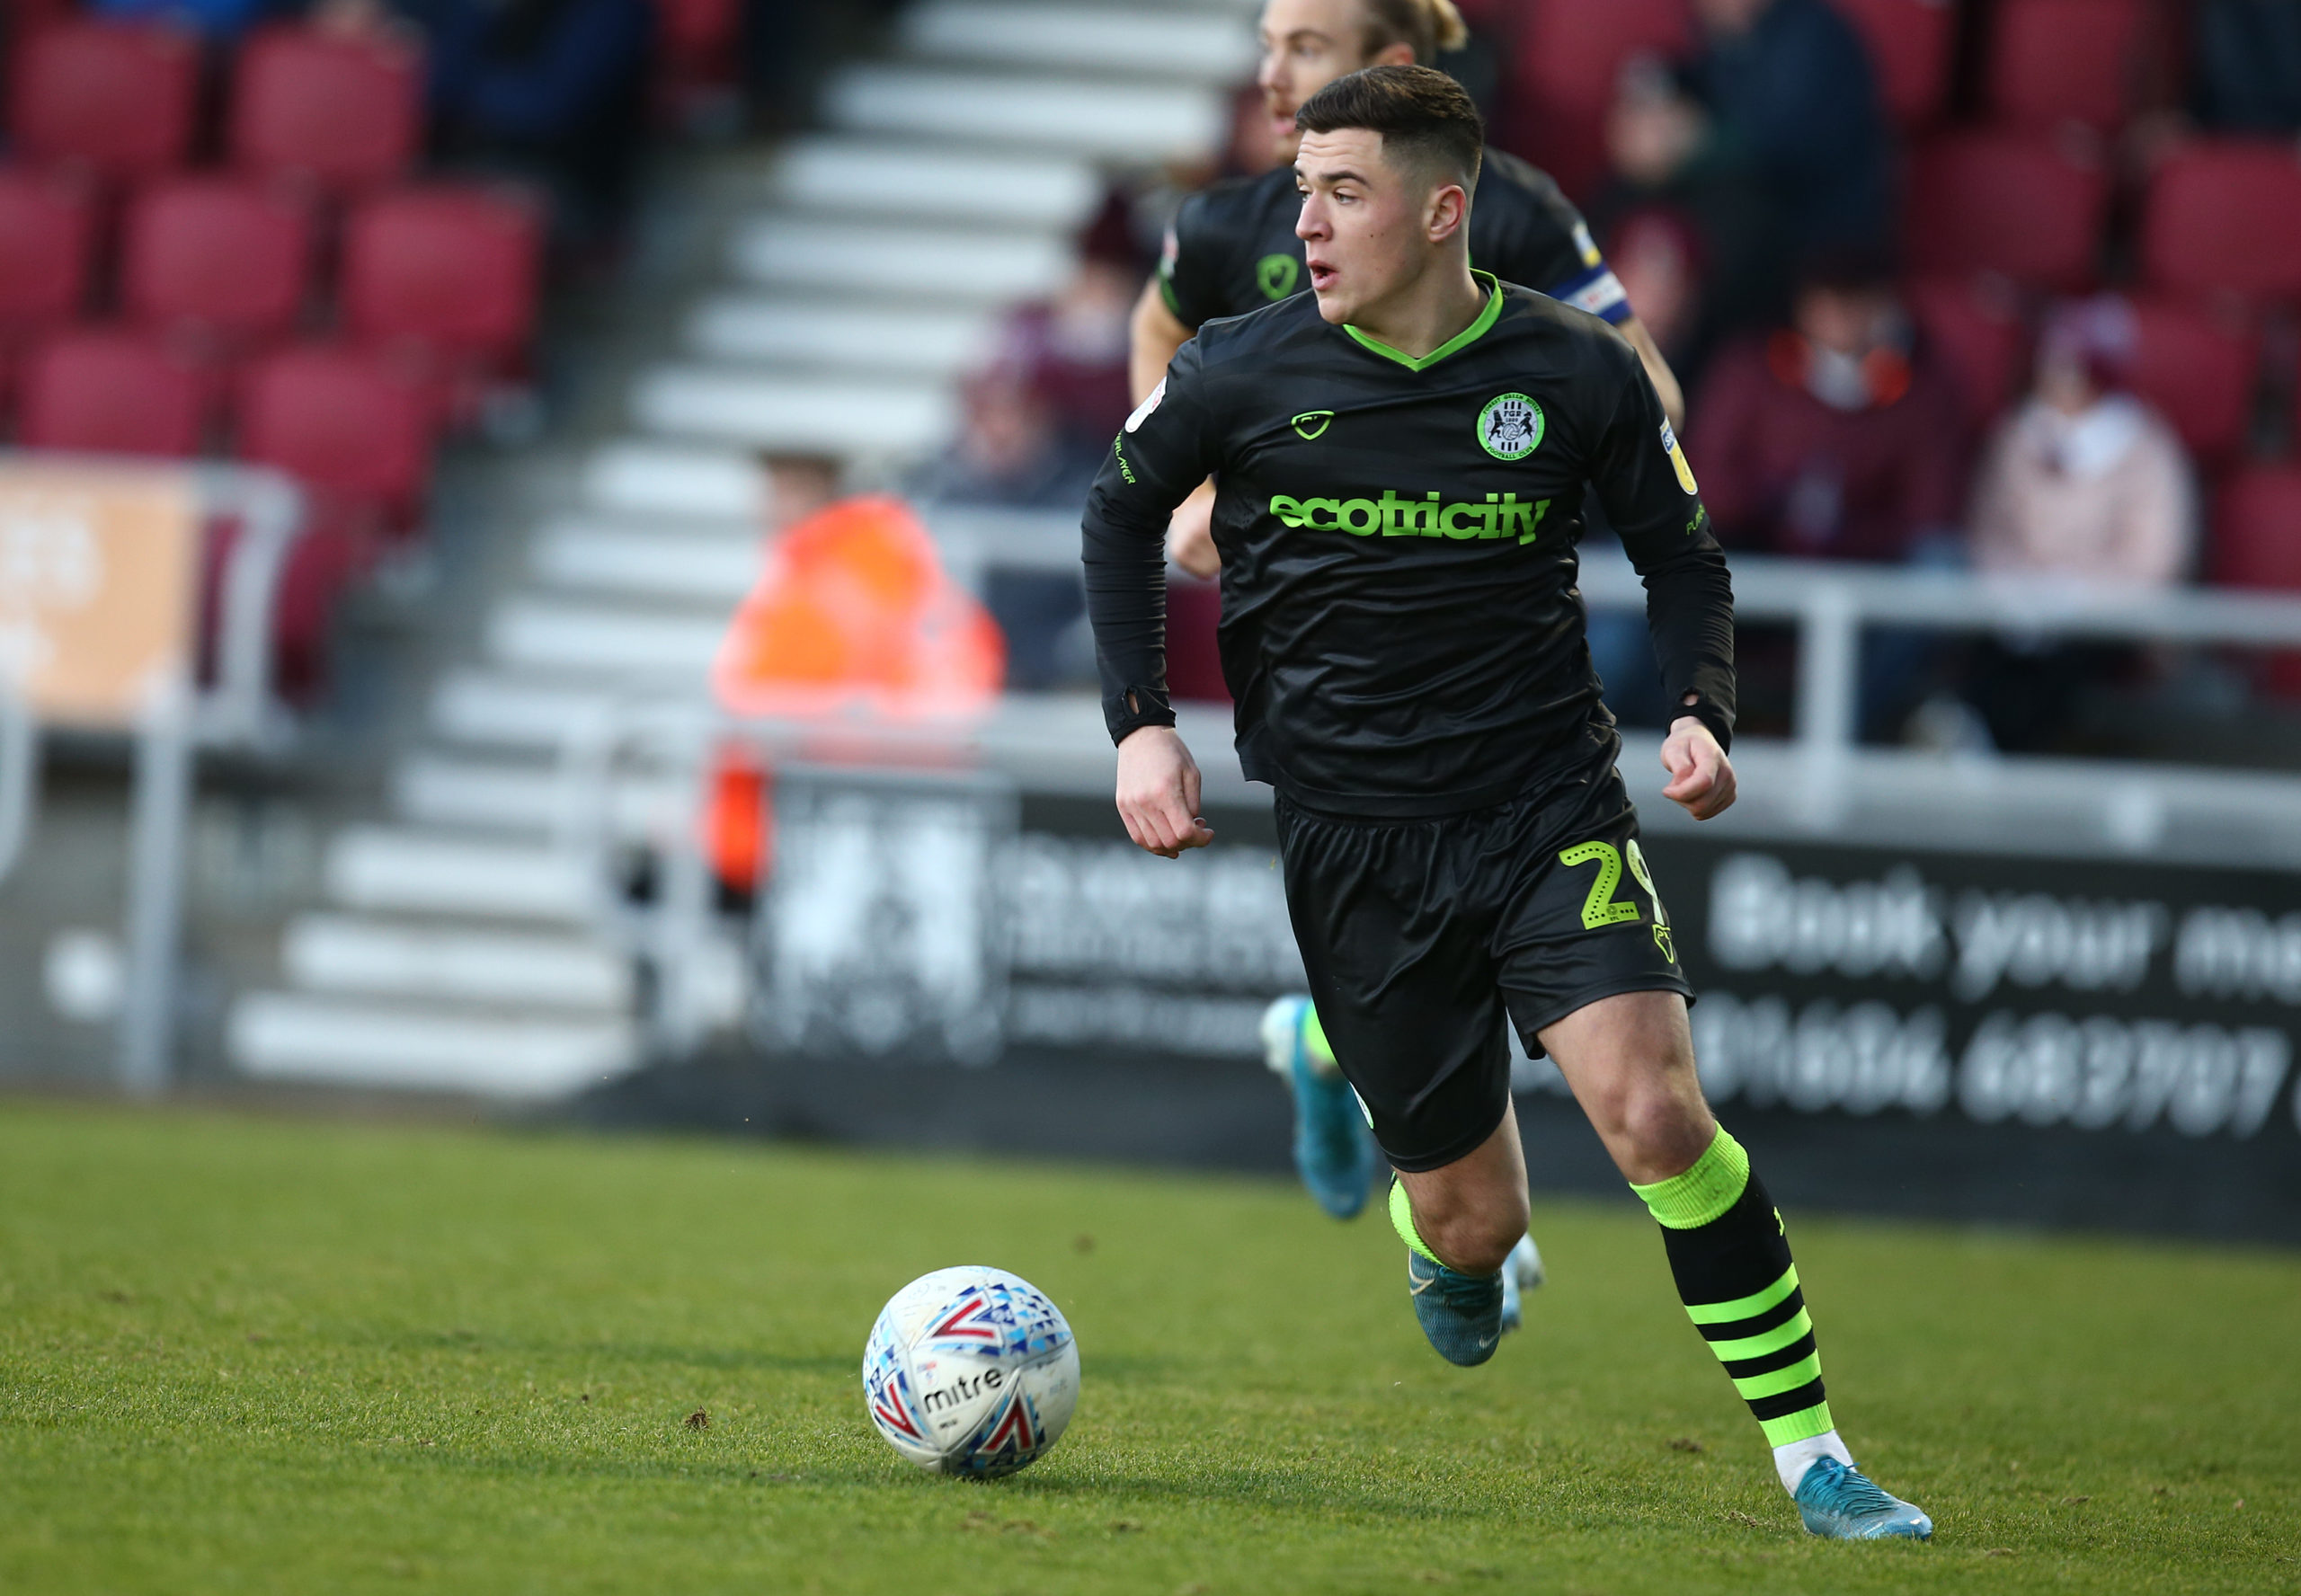 Jack Aitchison impresed with Forest Green Rovers last season